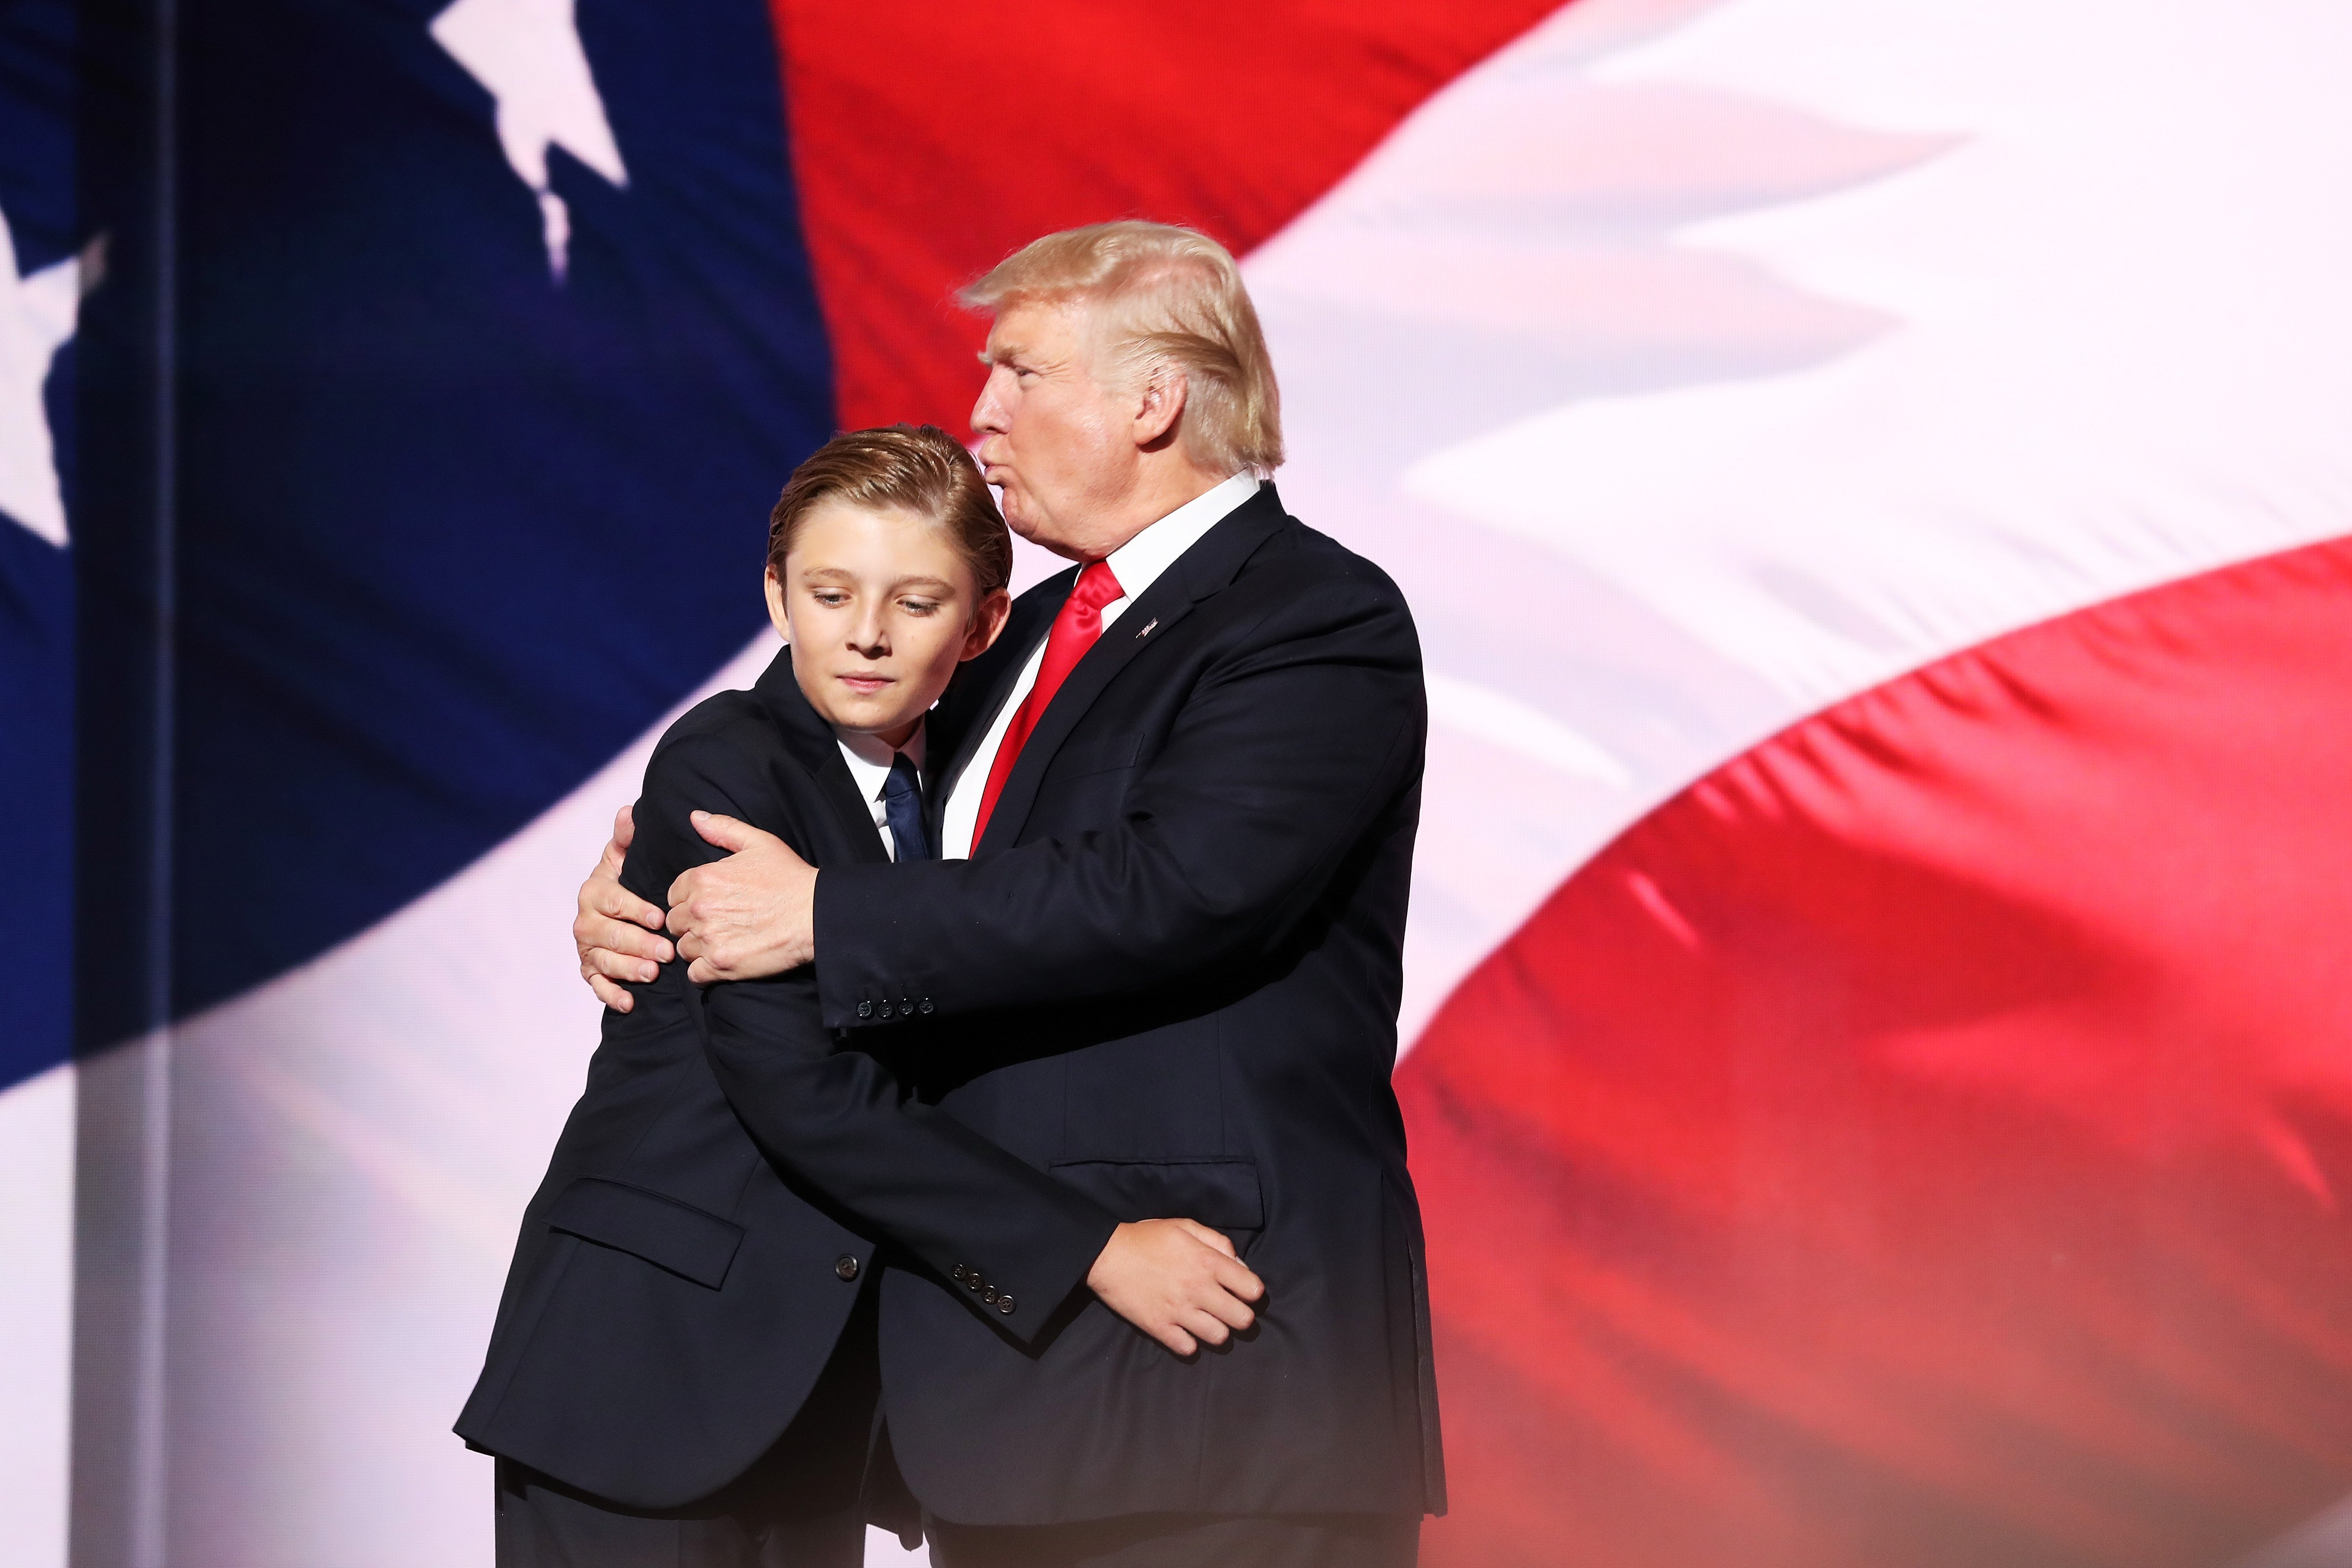 Donald embraces his son Barron Trump after he delivered his speech on the fourth day of the Republican National Convention on July 21, 2016 in Cleveland, Ohio | Photo: Getty Images